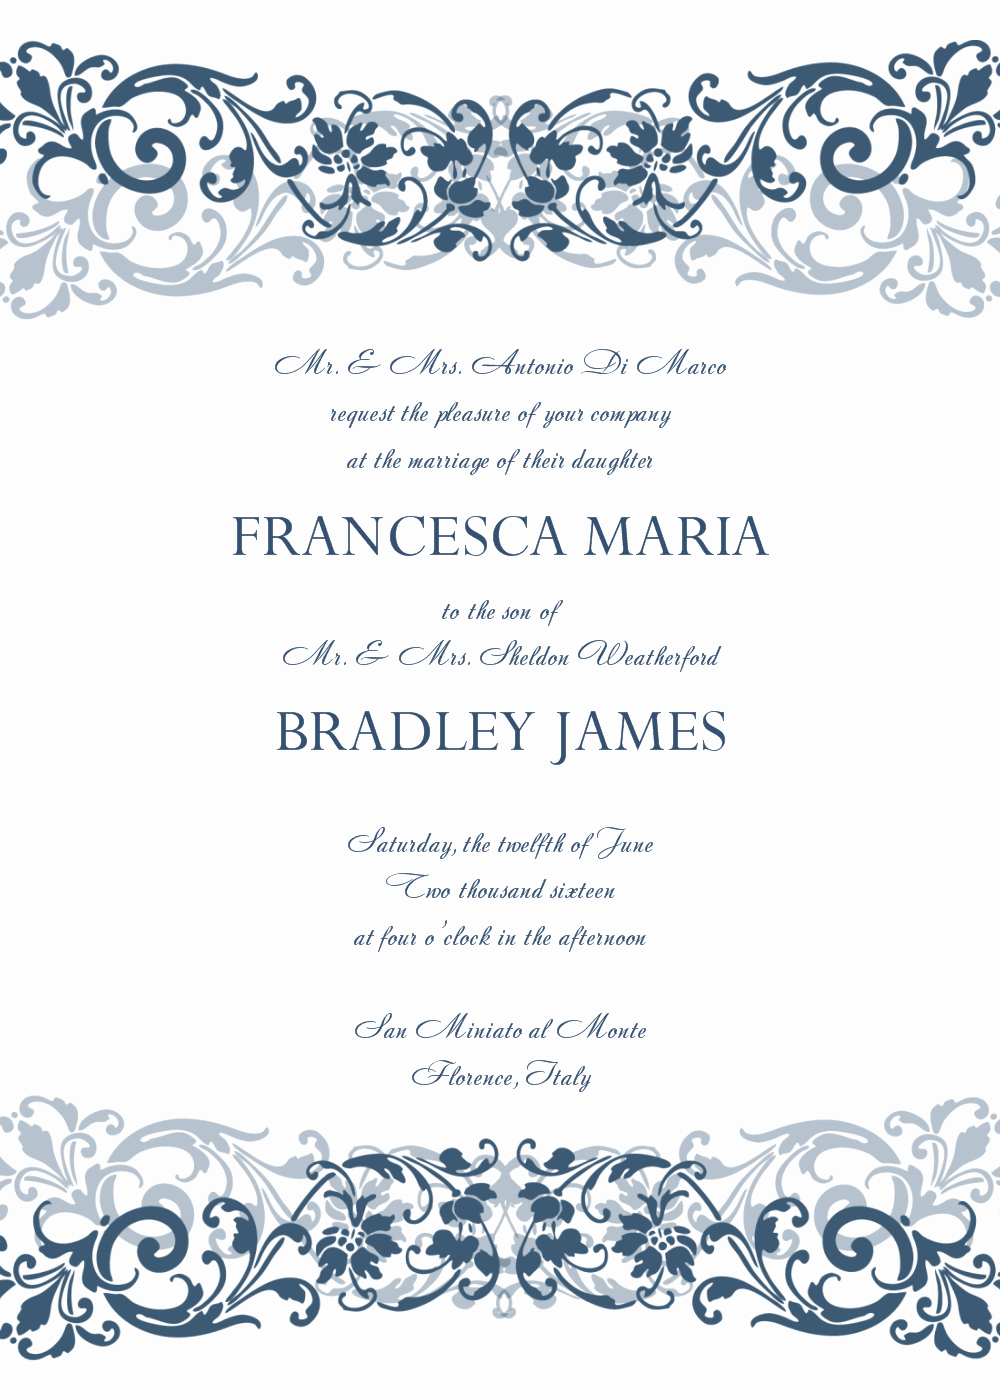 Wedding Invitations Templates Microsoft Word Beautiful 8 Free Wedding Invitation Templates Excel Pdf formats